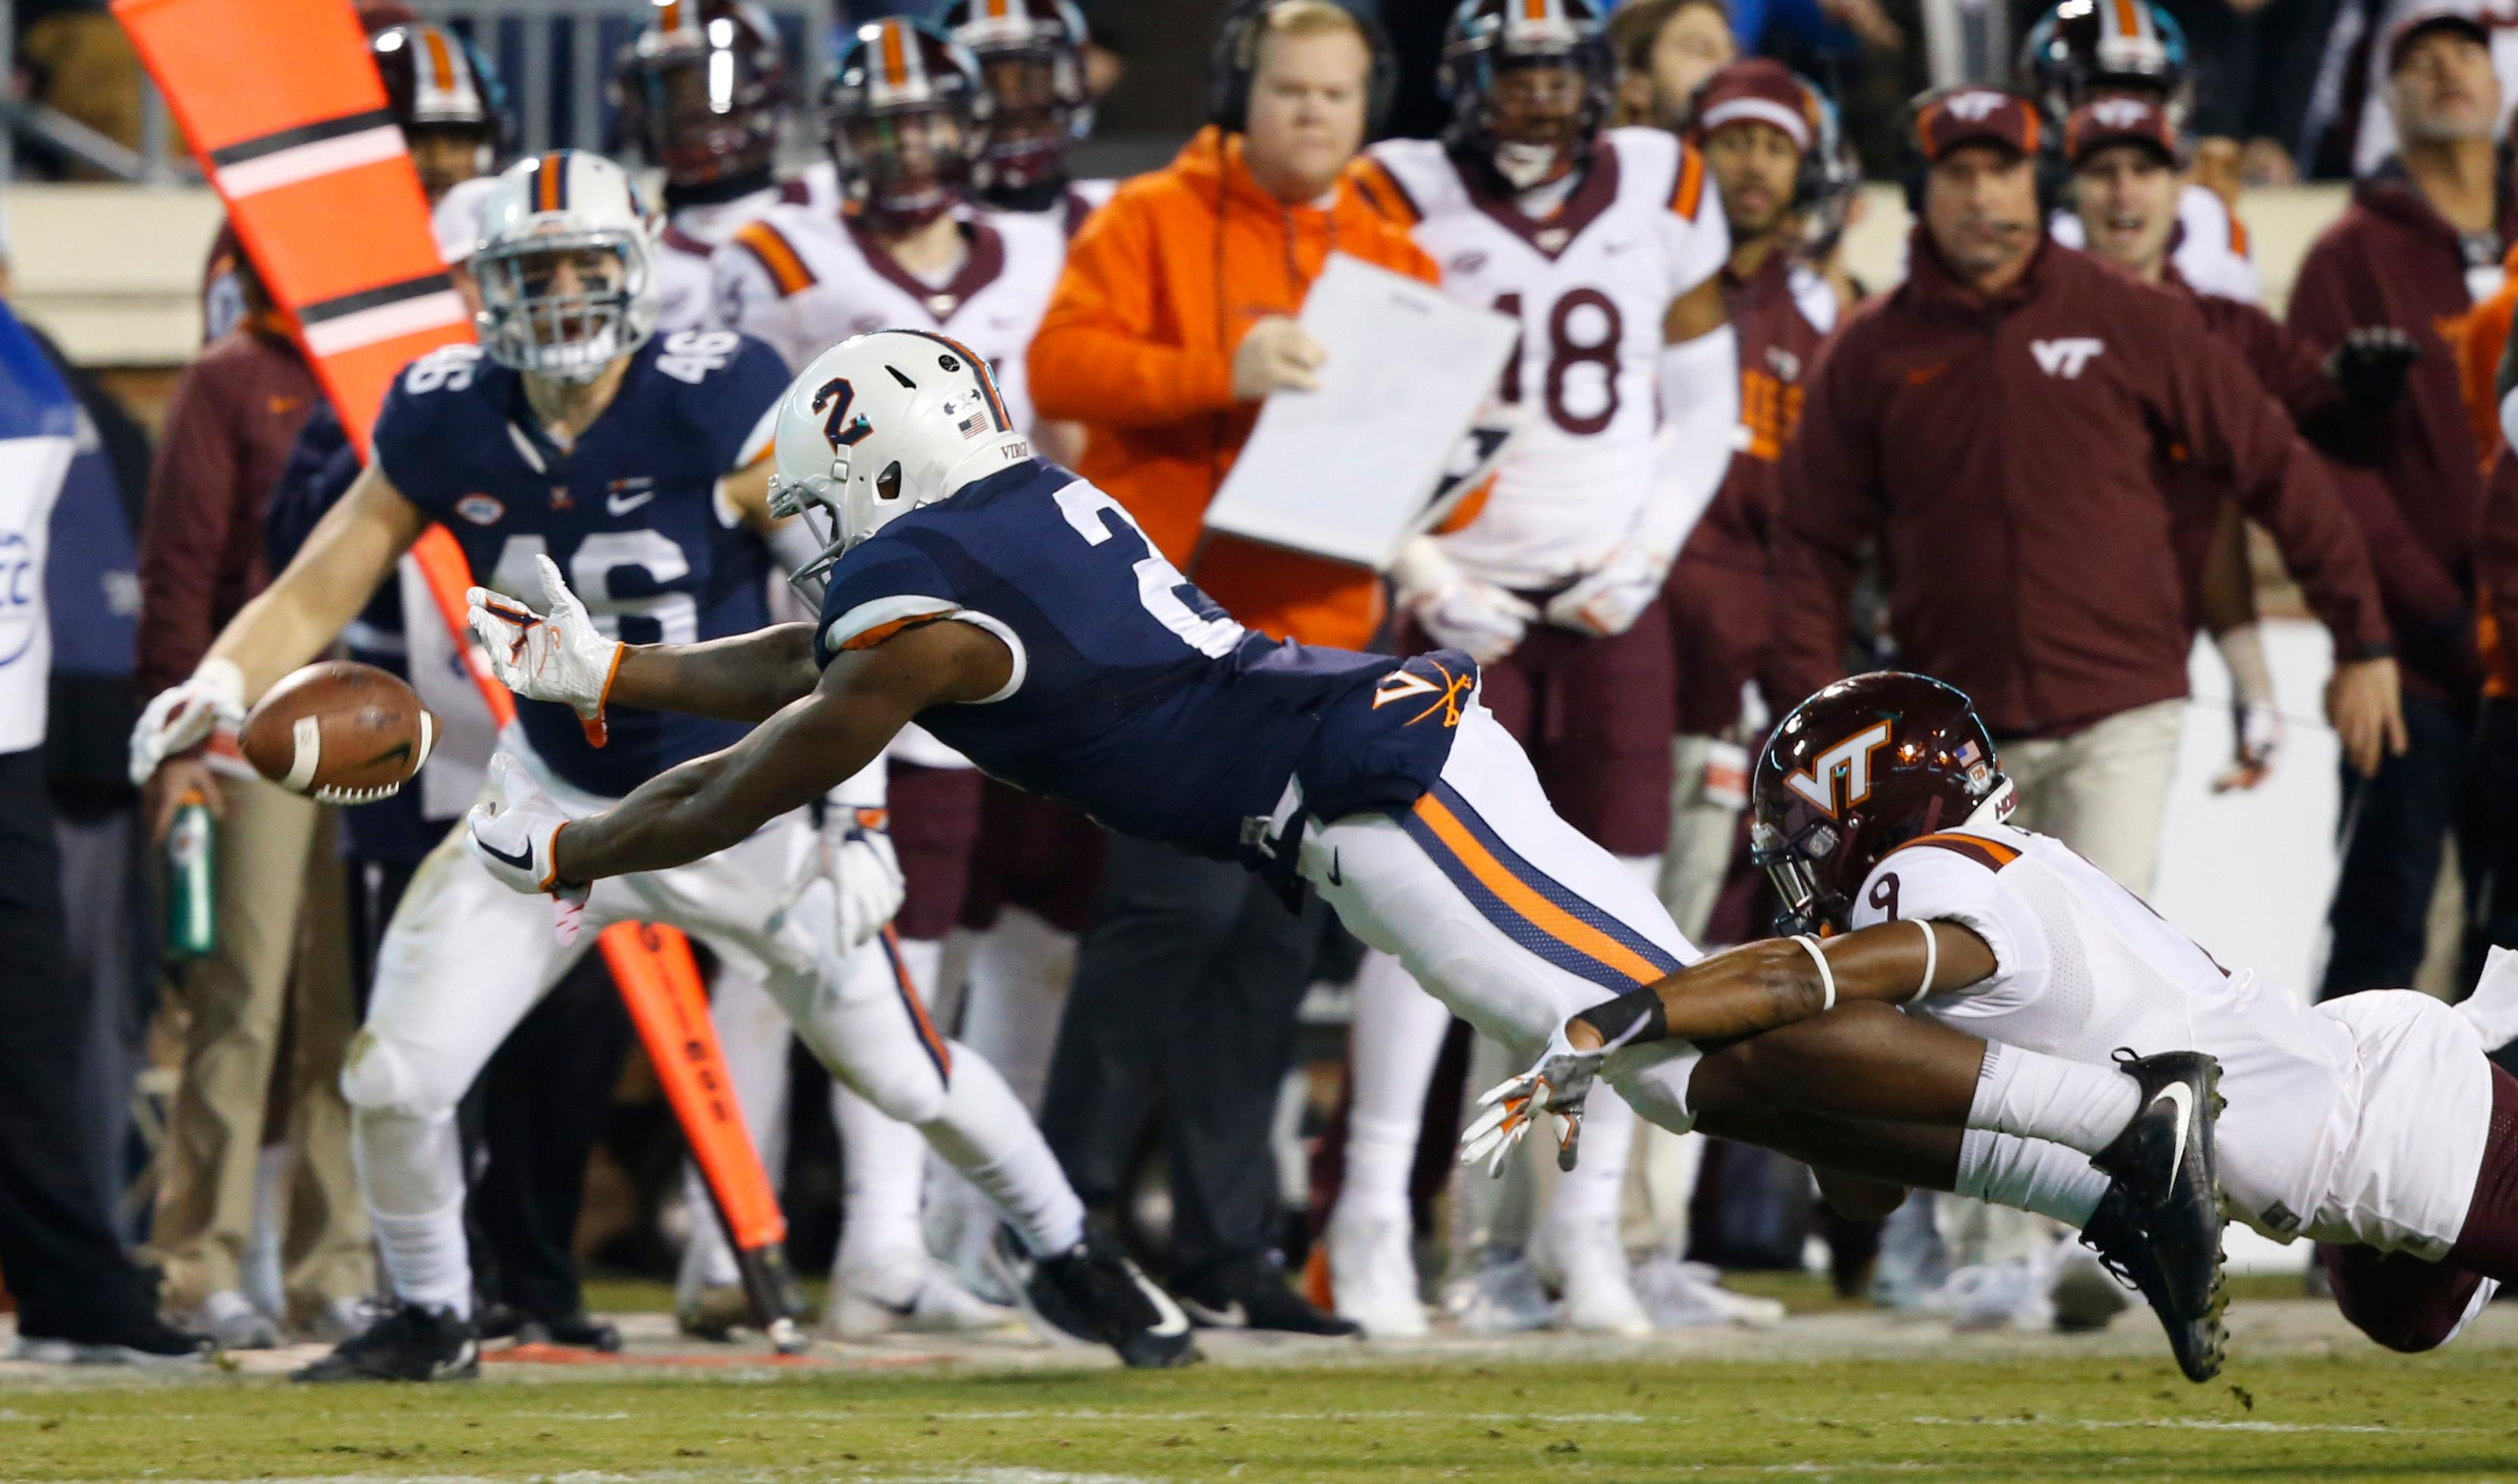 Virginia wide receiver Joe Reed (2) stretches out to reach a pass as Virginia Tech defensive back Khalil Ladler (9) defends during the first half of an NCAA college football game in Charlottesville, Va., Friday, Nov. 24, 2017. (AP Photo/Steve Helber)